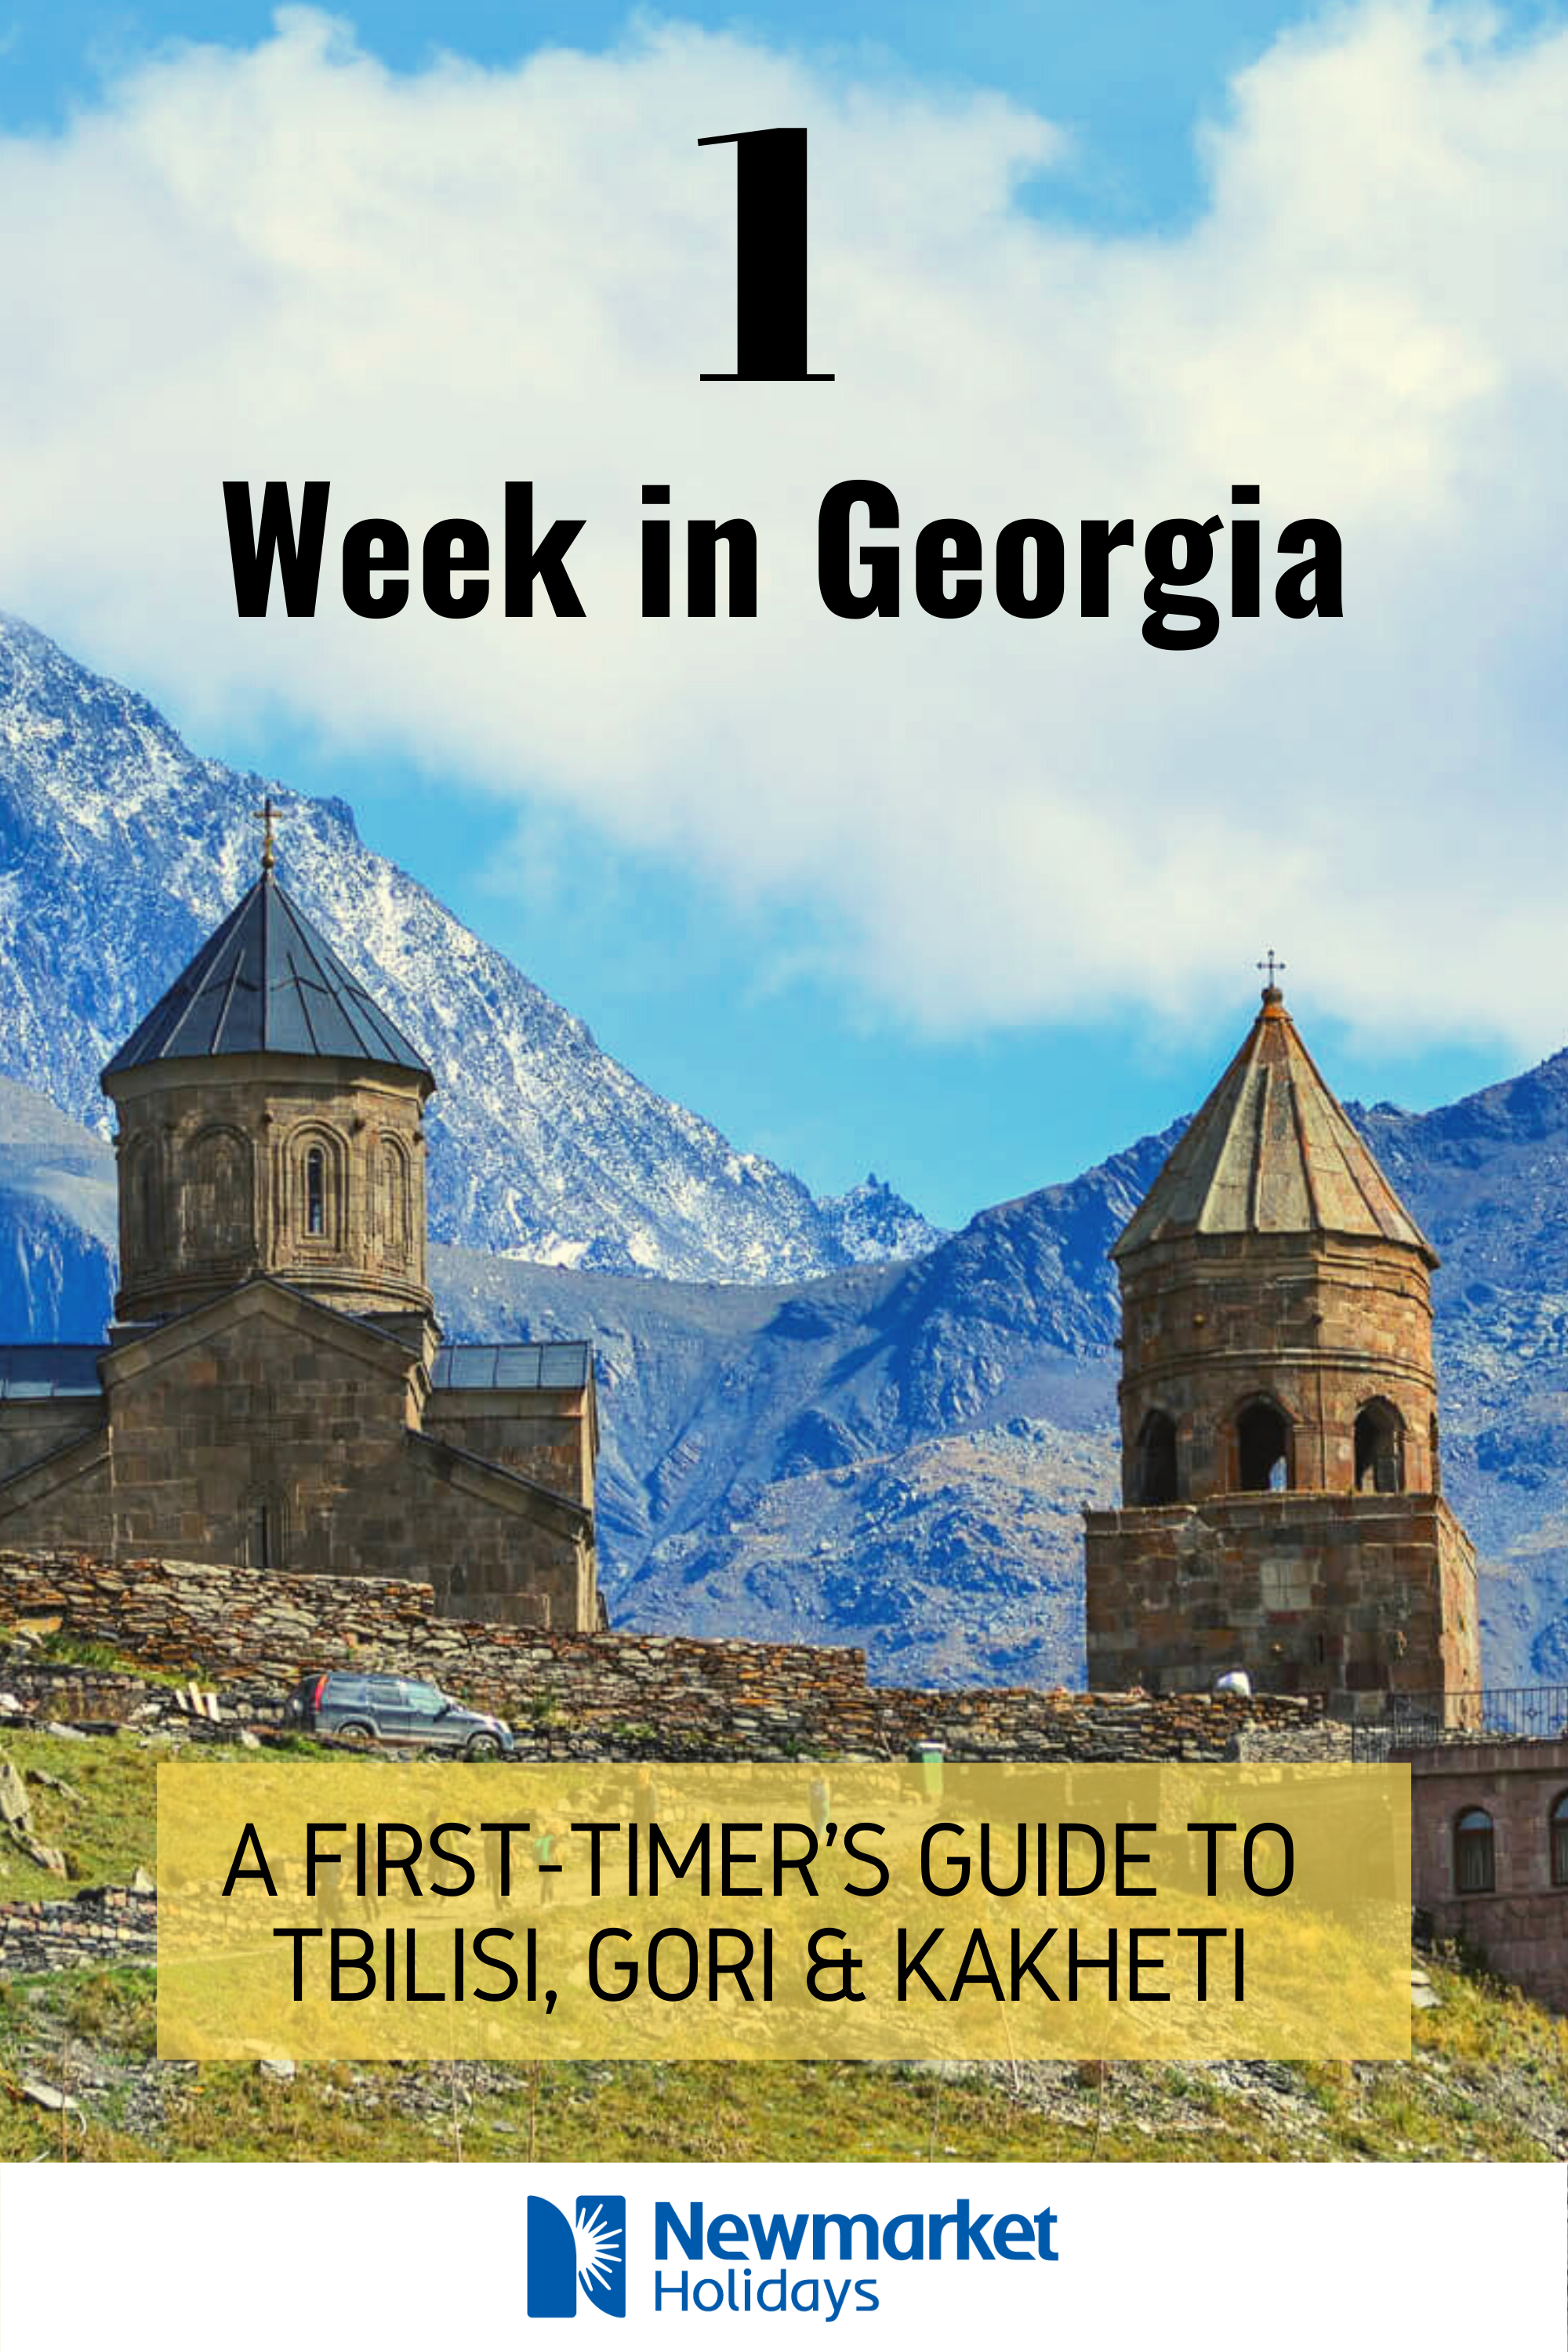 How to spend an incredible week in Georgia: a guide for first-timers